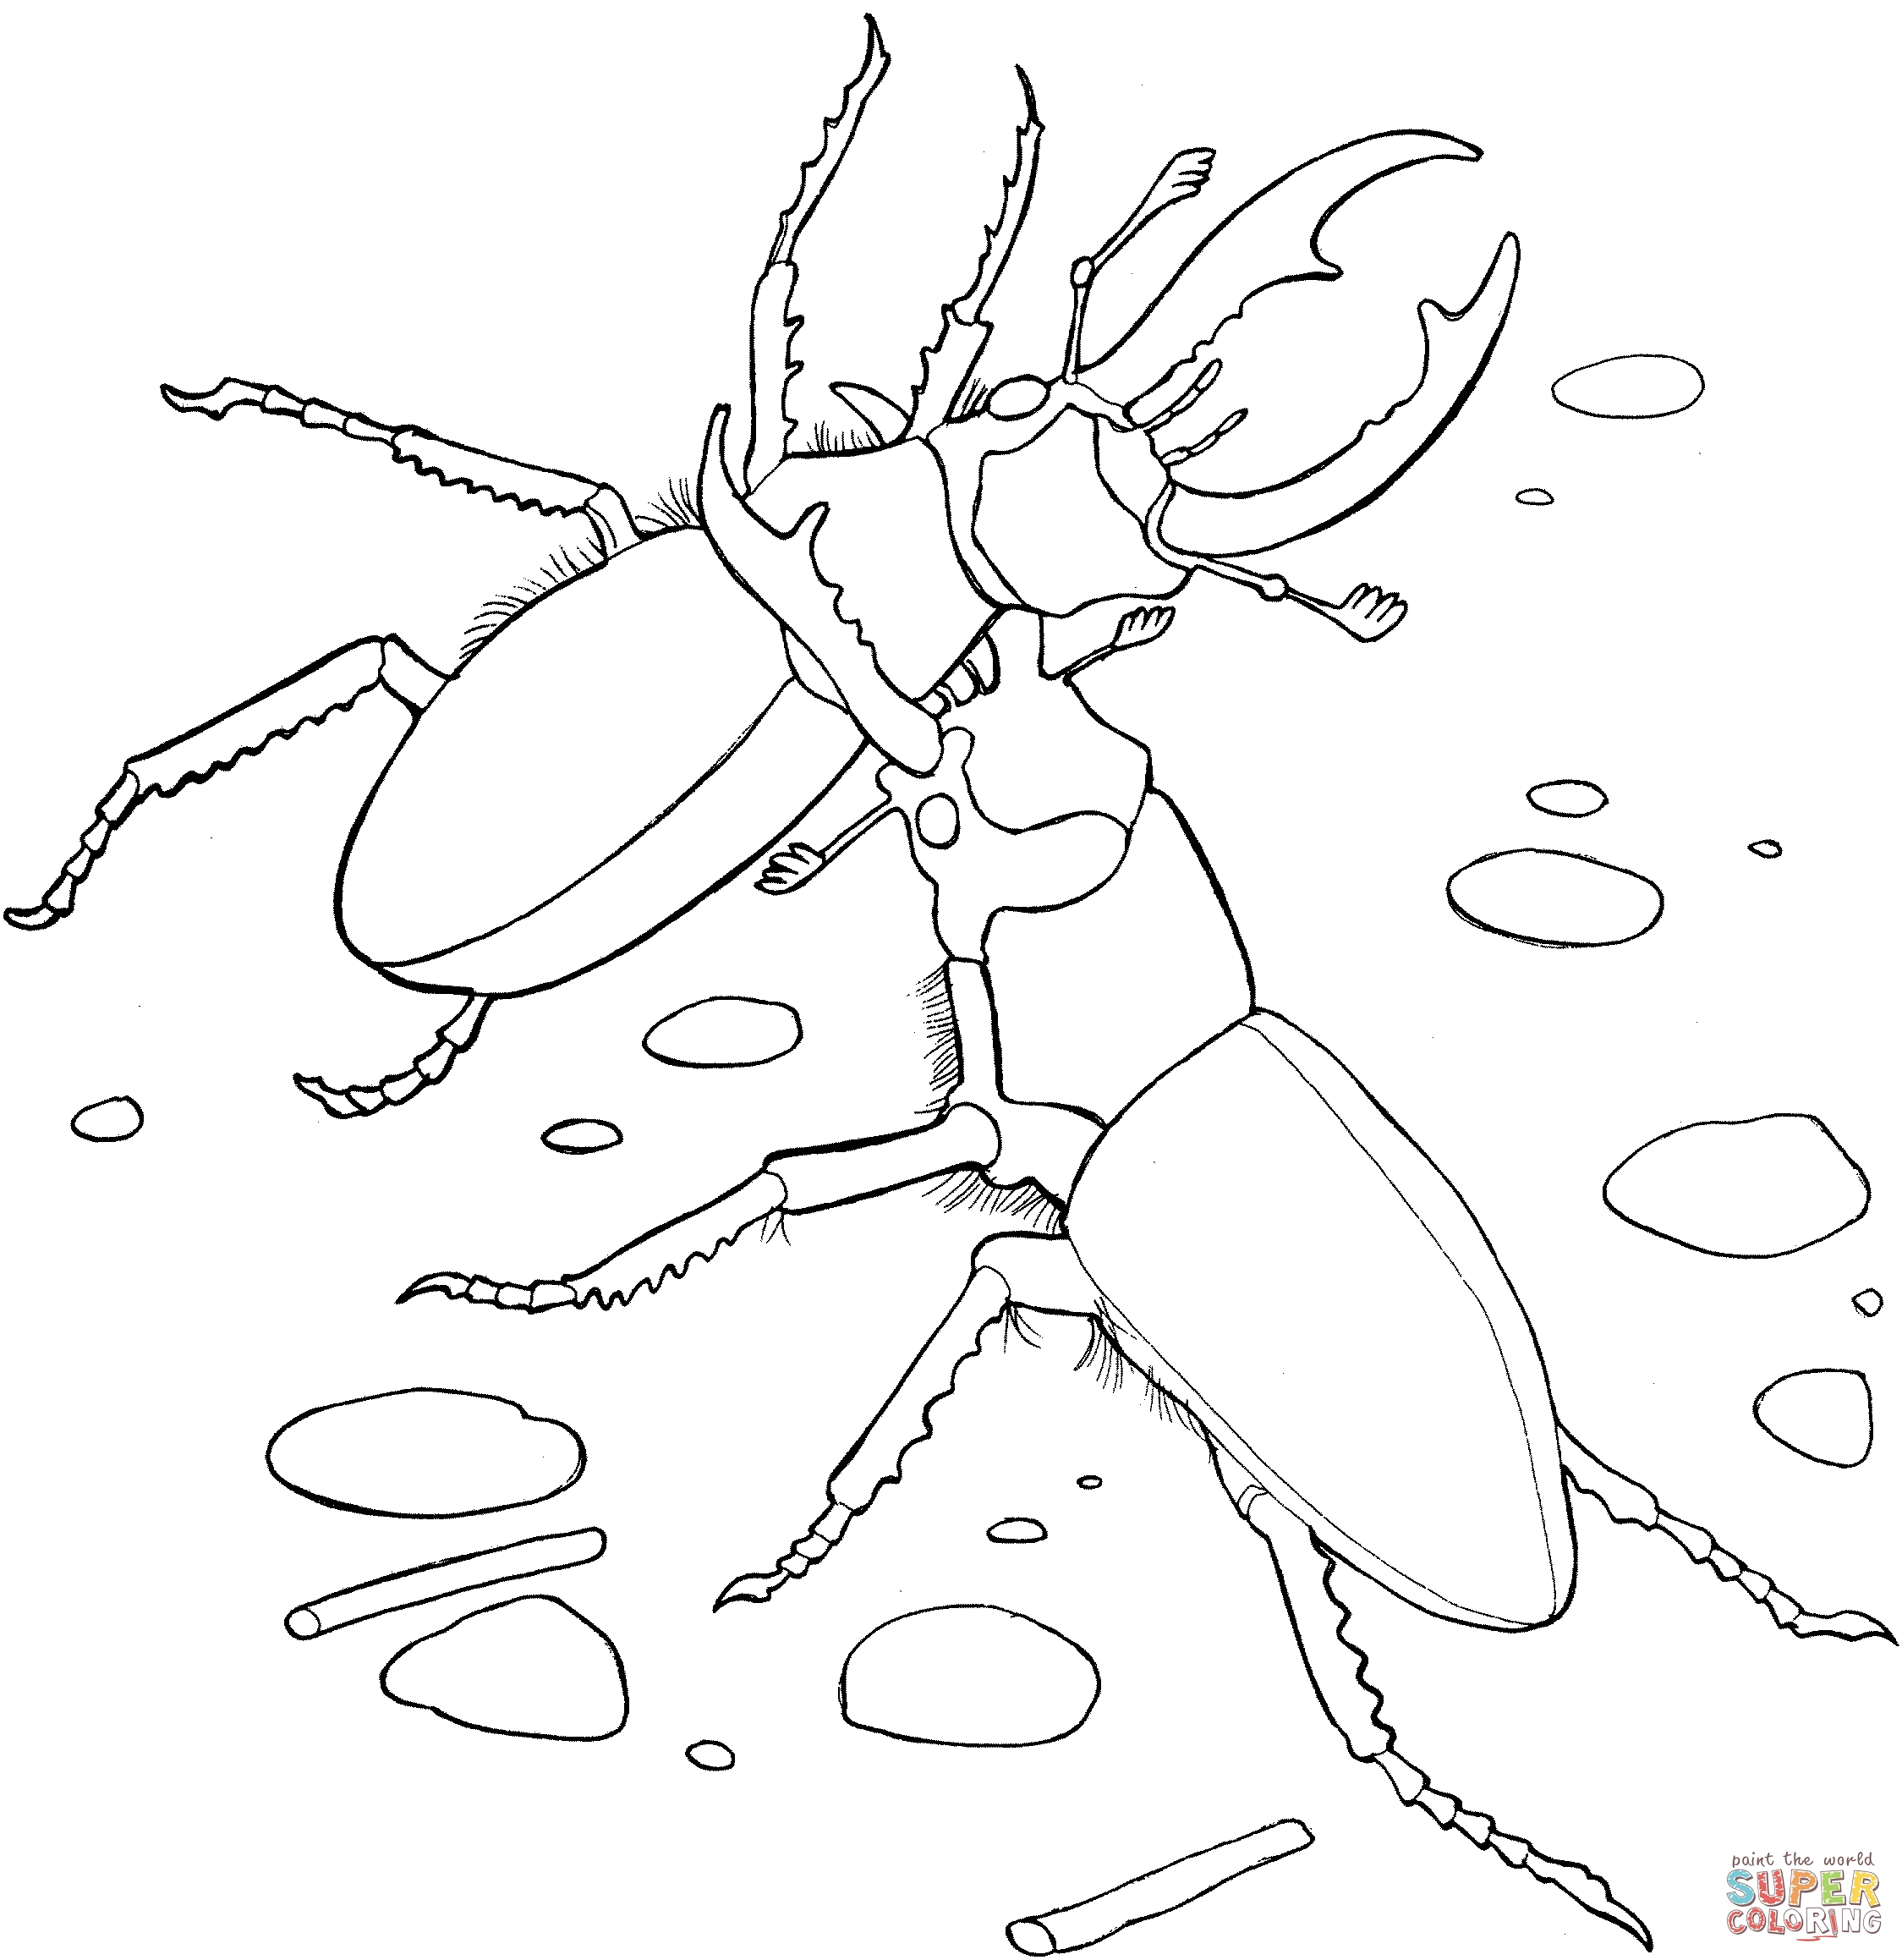 21 Dragonfly Coloring Page Compilation | FREE COLORING PAGES - Part 2